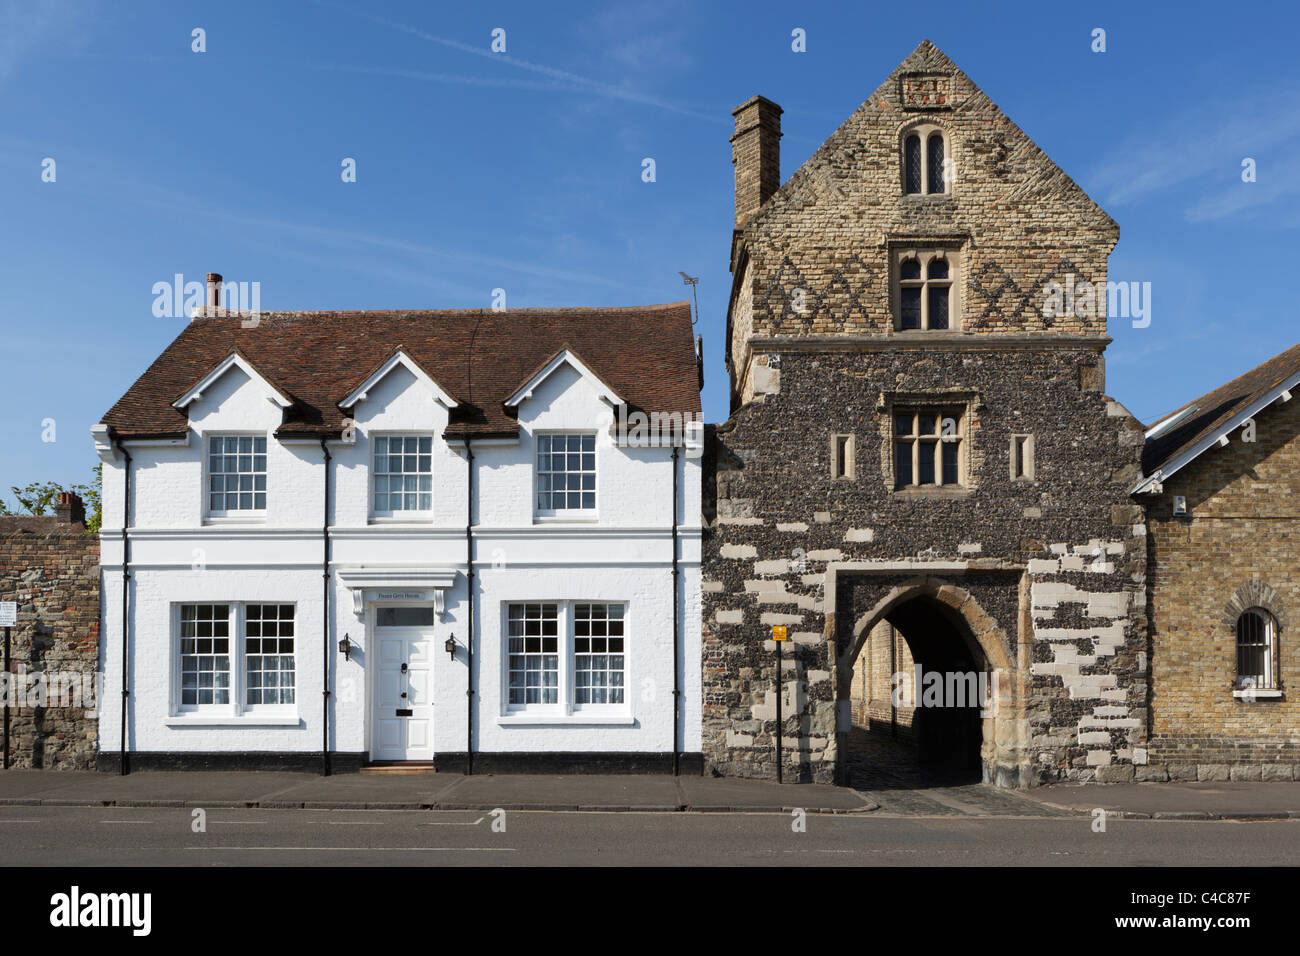 Fisher Gate, built around 1384, and Fisher Gate Cottage - Stock Image